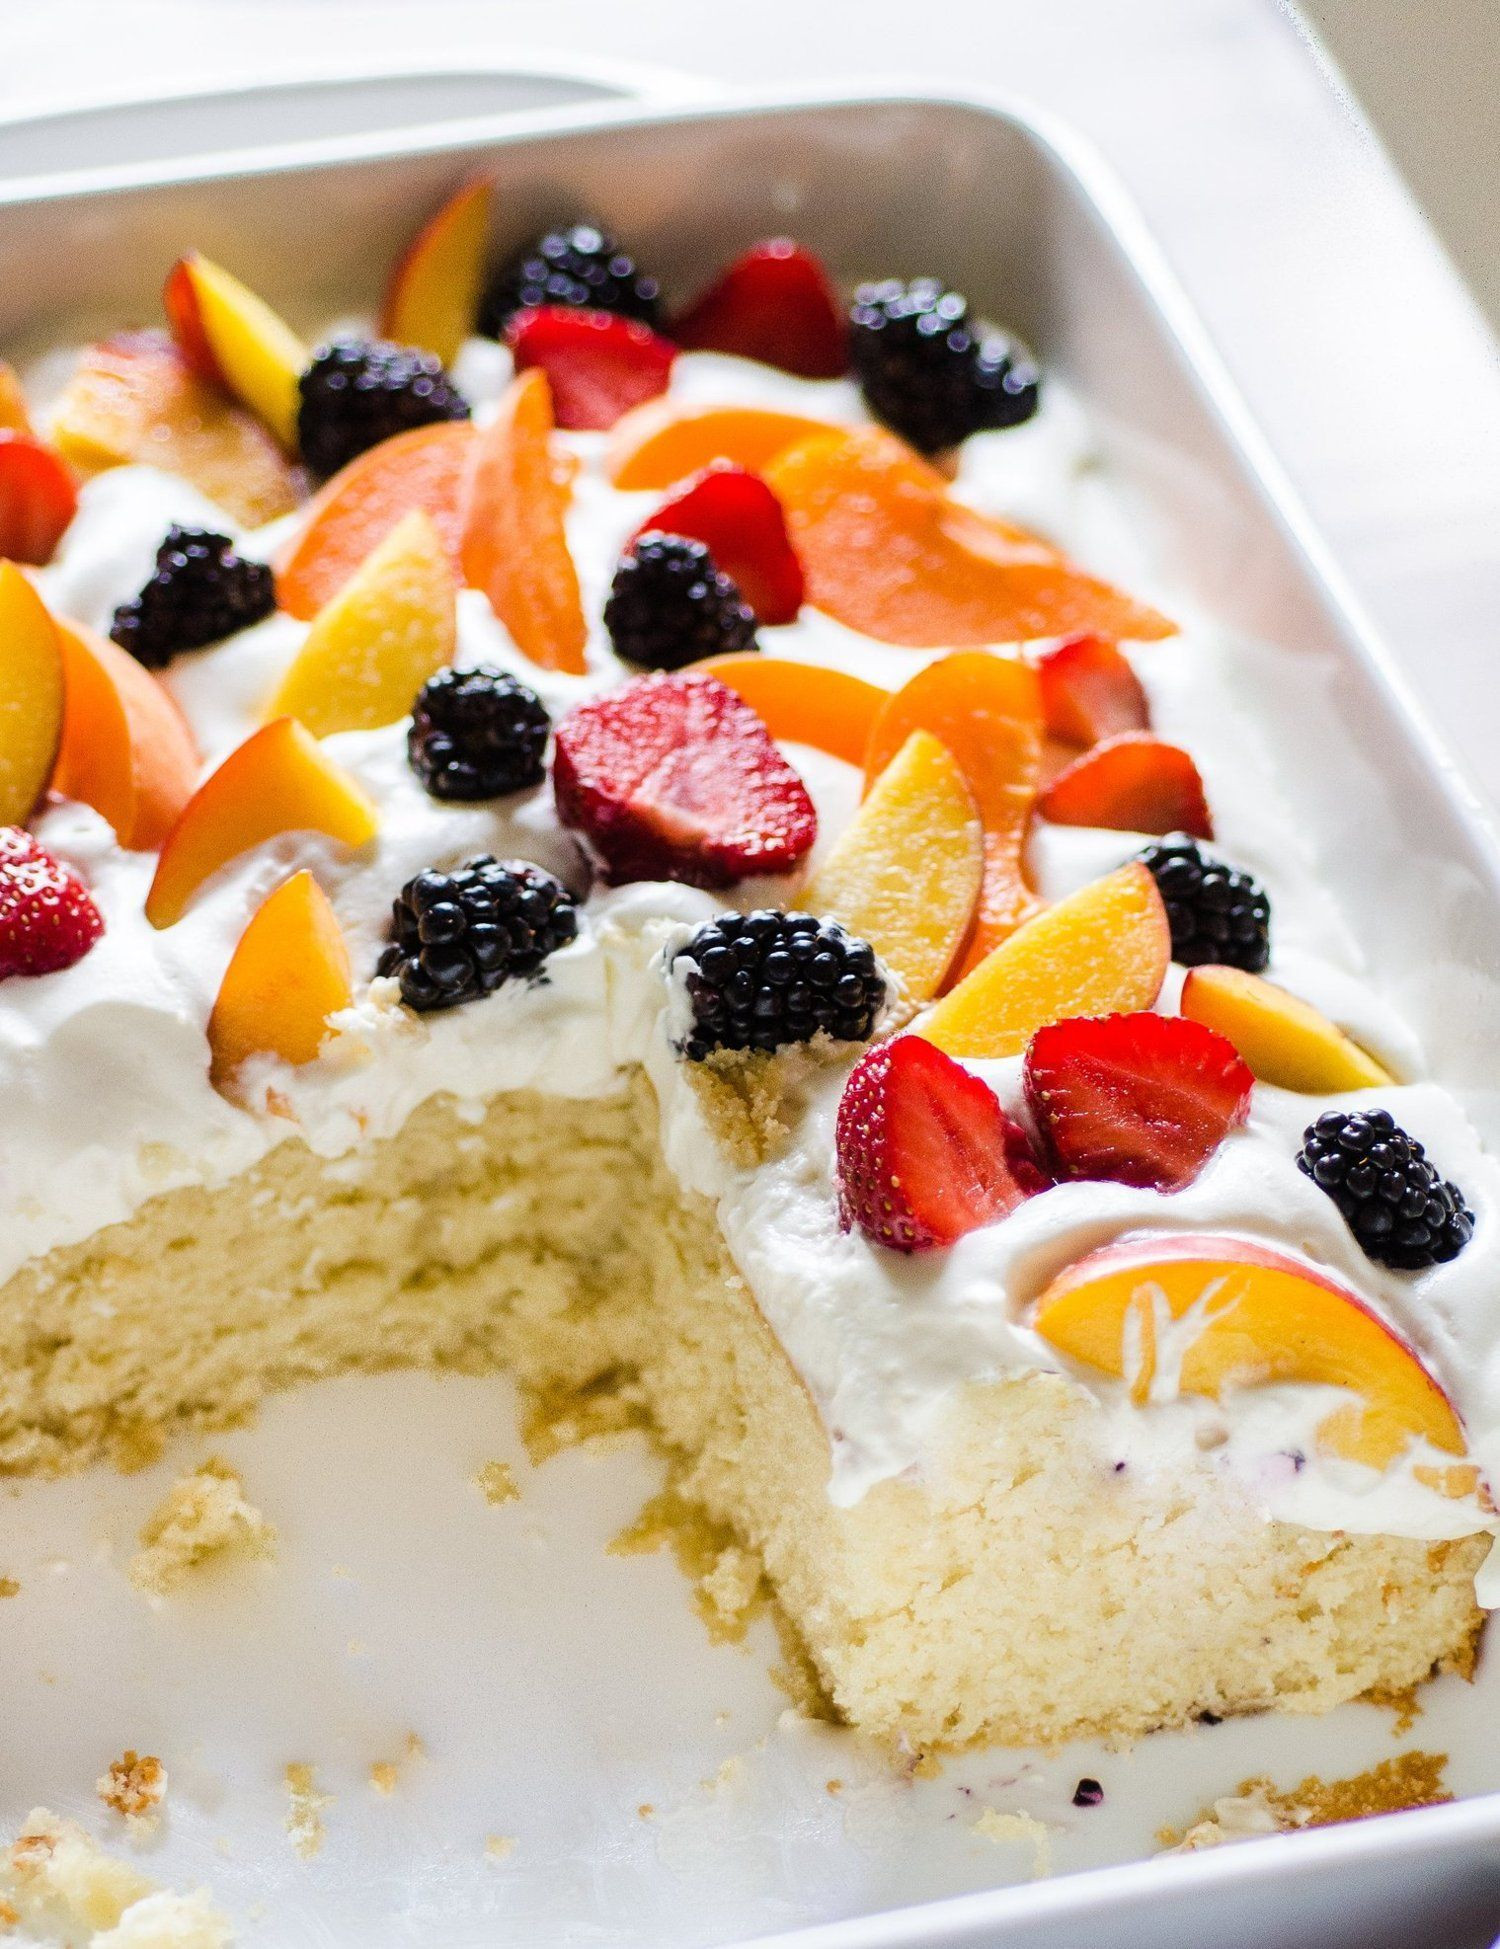 Summer Fruits Dessert  Easy Summer Cake with Fruit & Cream Recipe